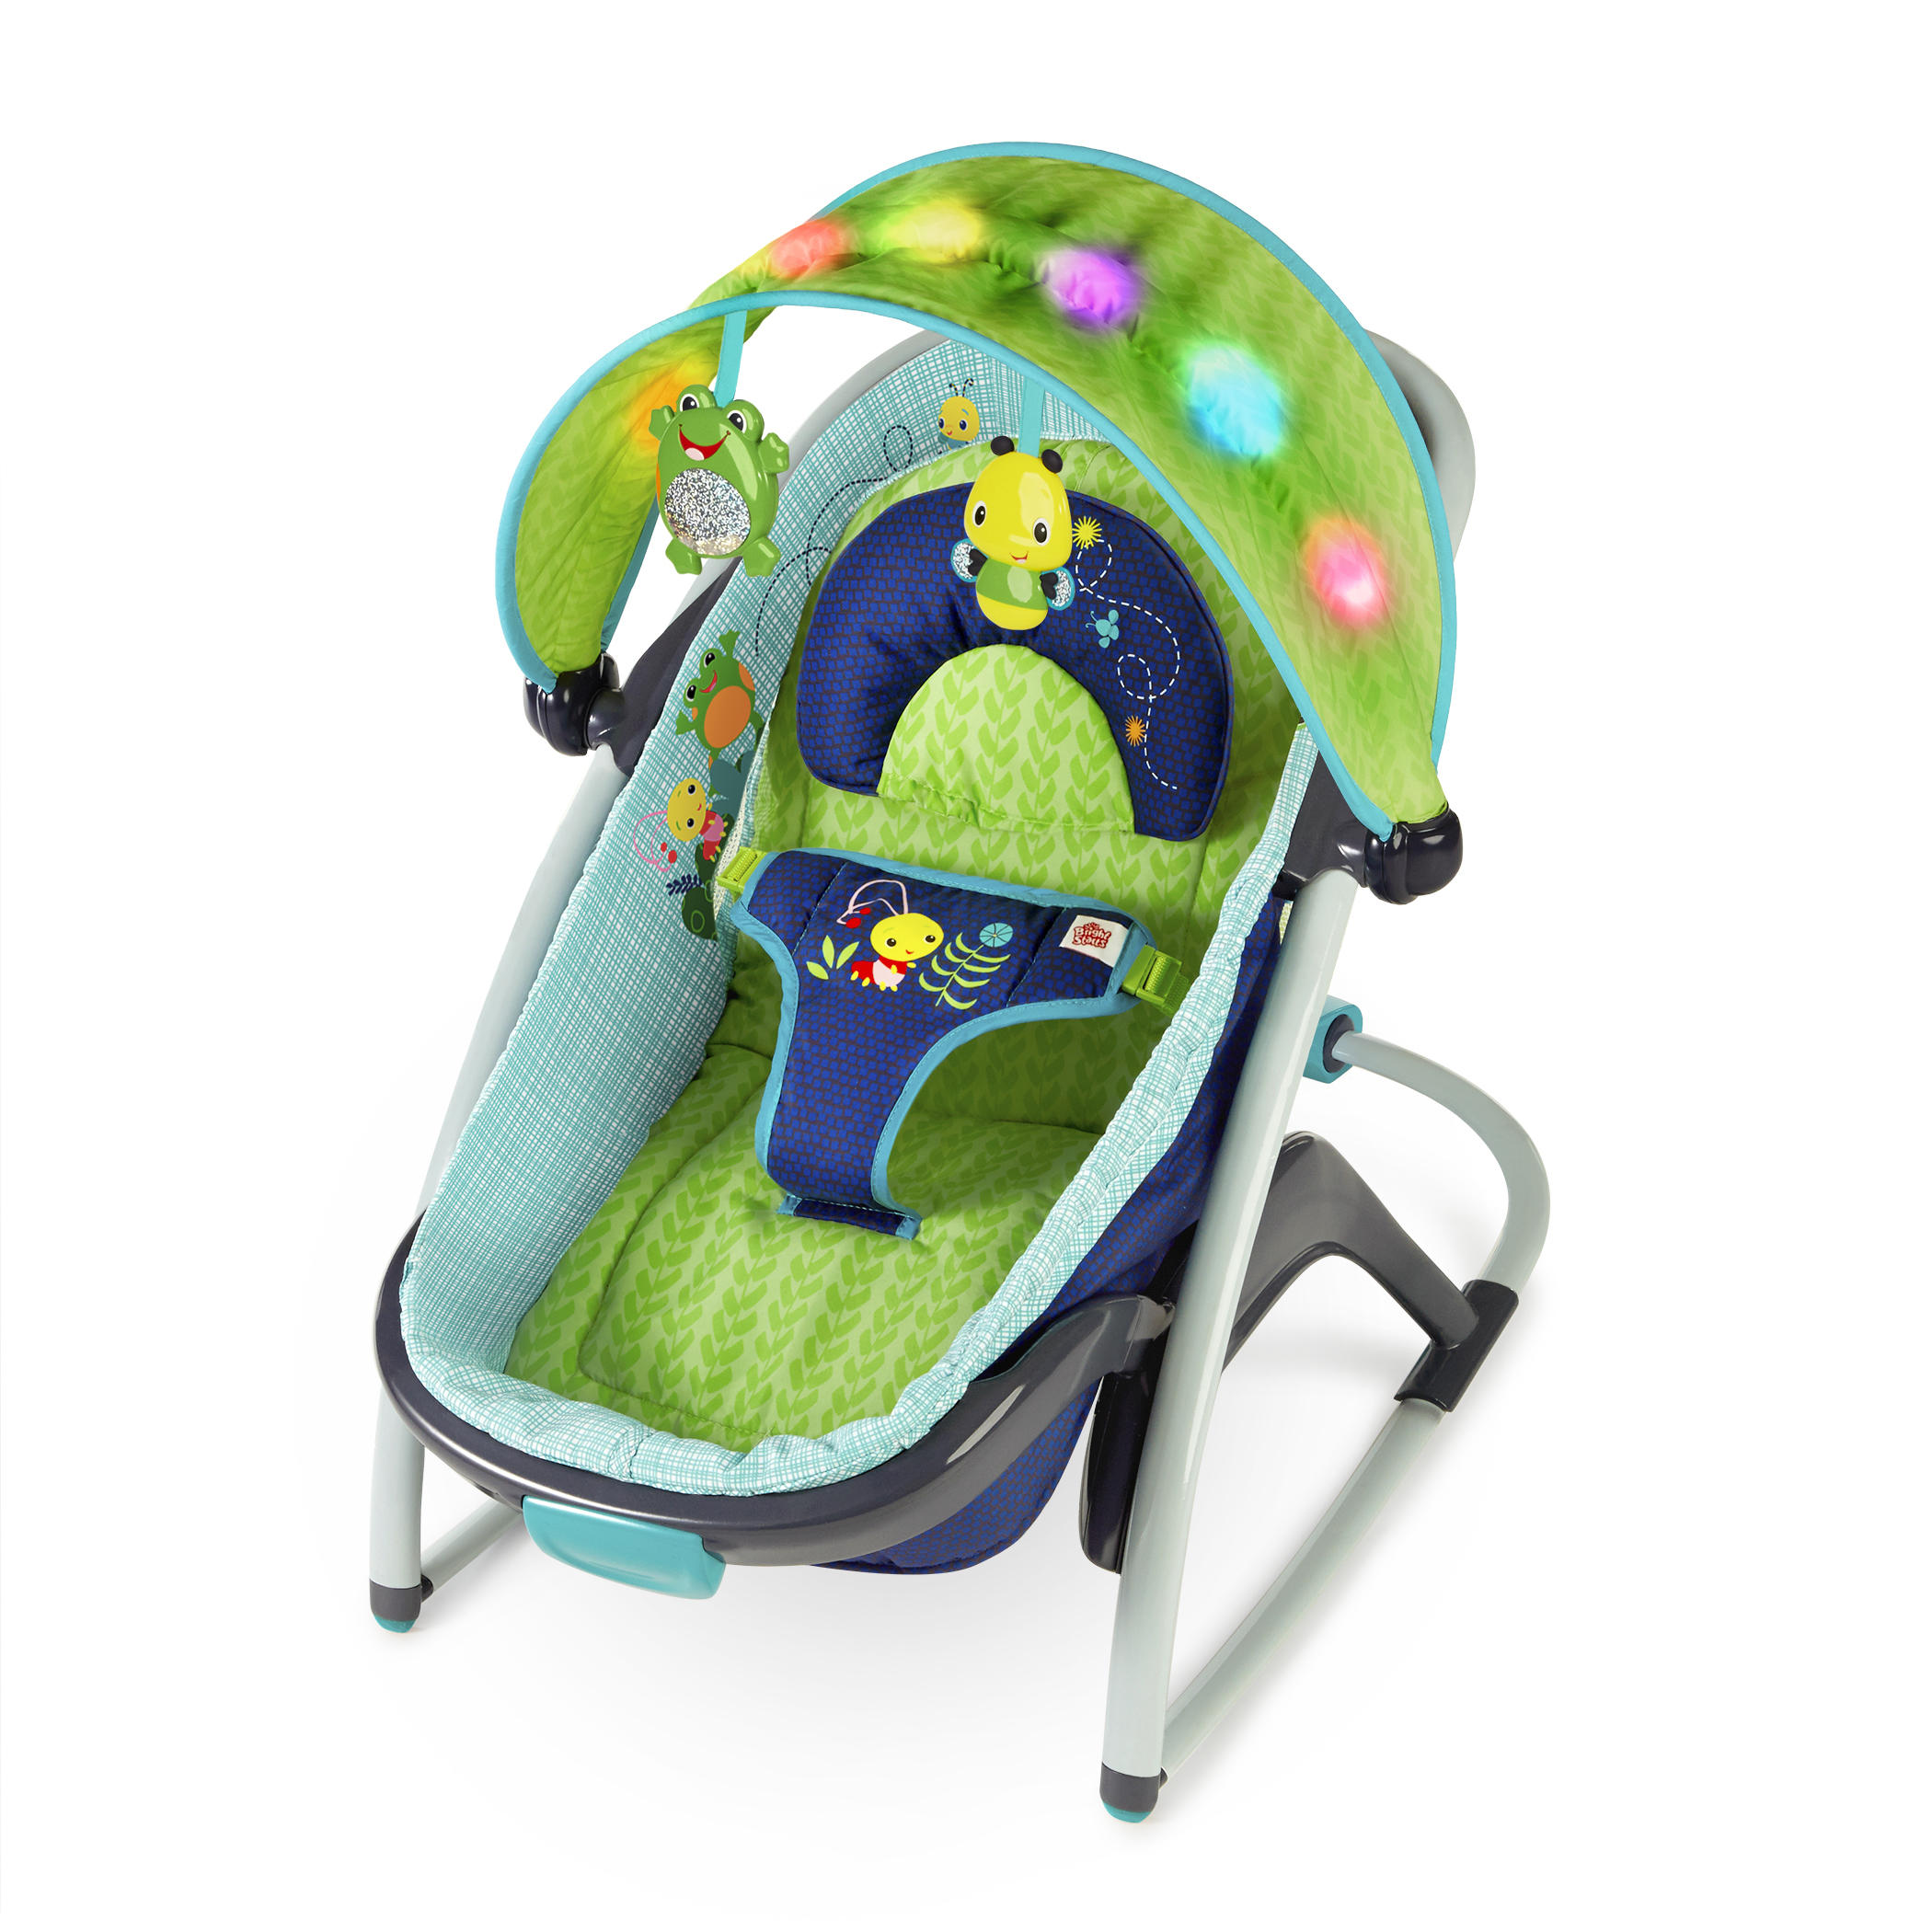 Bright Starts Light Up Lagoon 2 In 1 Delight & Dream Rocker